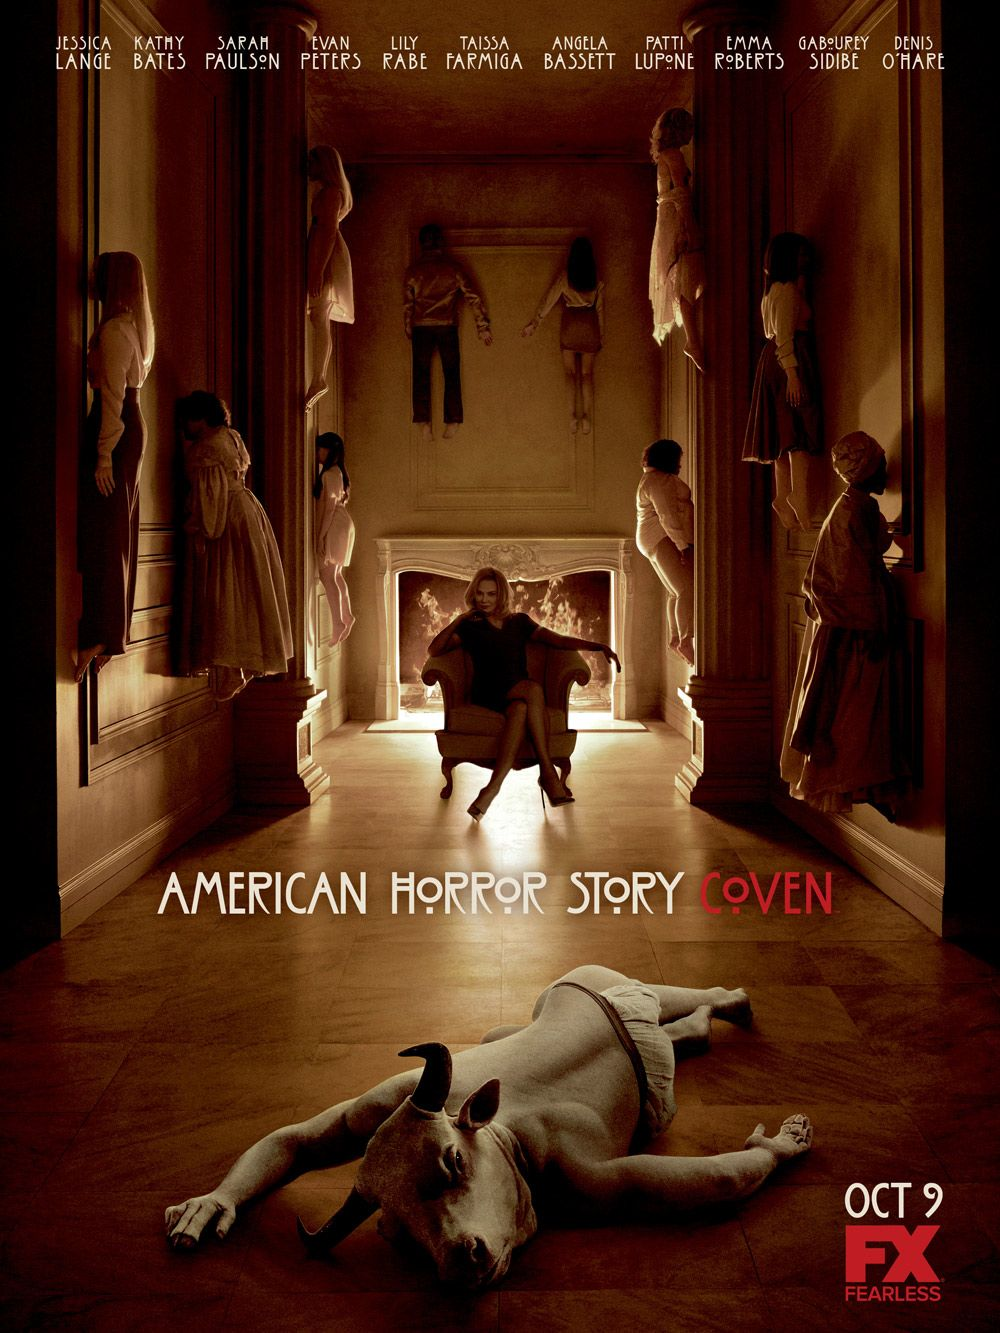 AMERICAN HORROR STORY: COVEN Trailer and Poster. AMERICAN ...